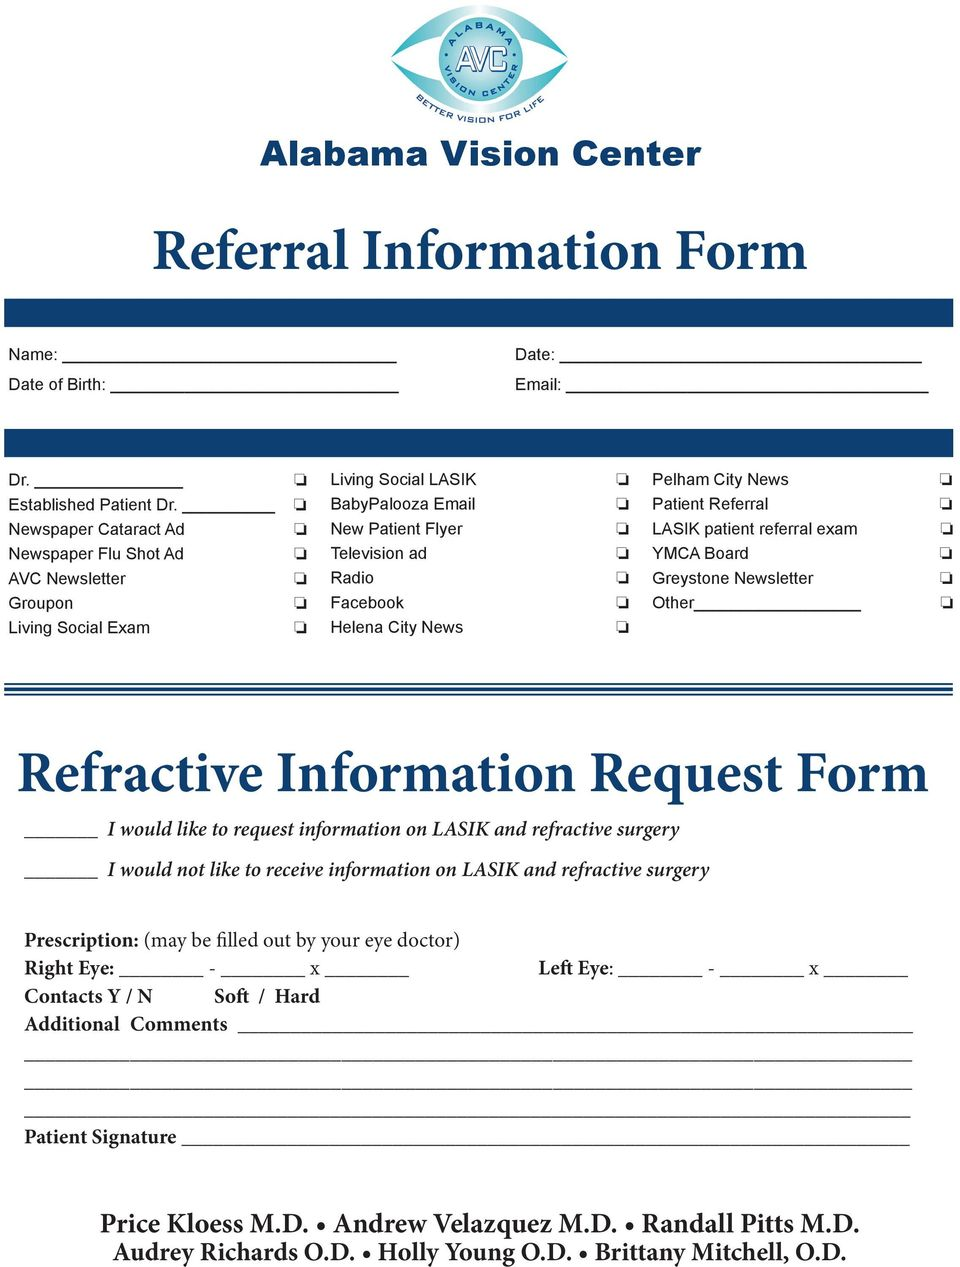 News Patient Referral LASIK patient referral exam YMCA Board Greystone Newsletter Other MCA Board YMCA Refractive Information Request Form I would like to request information on LASIK and refractive